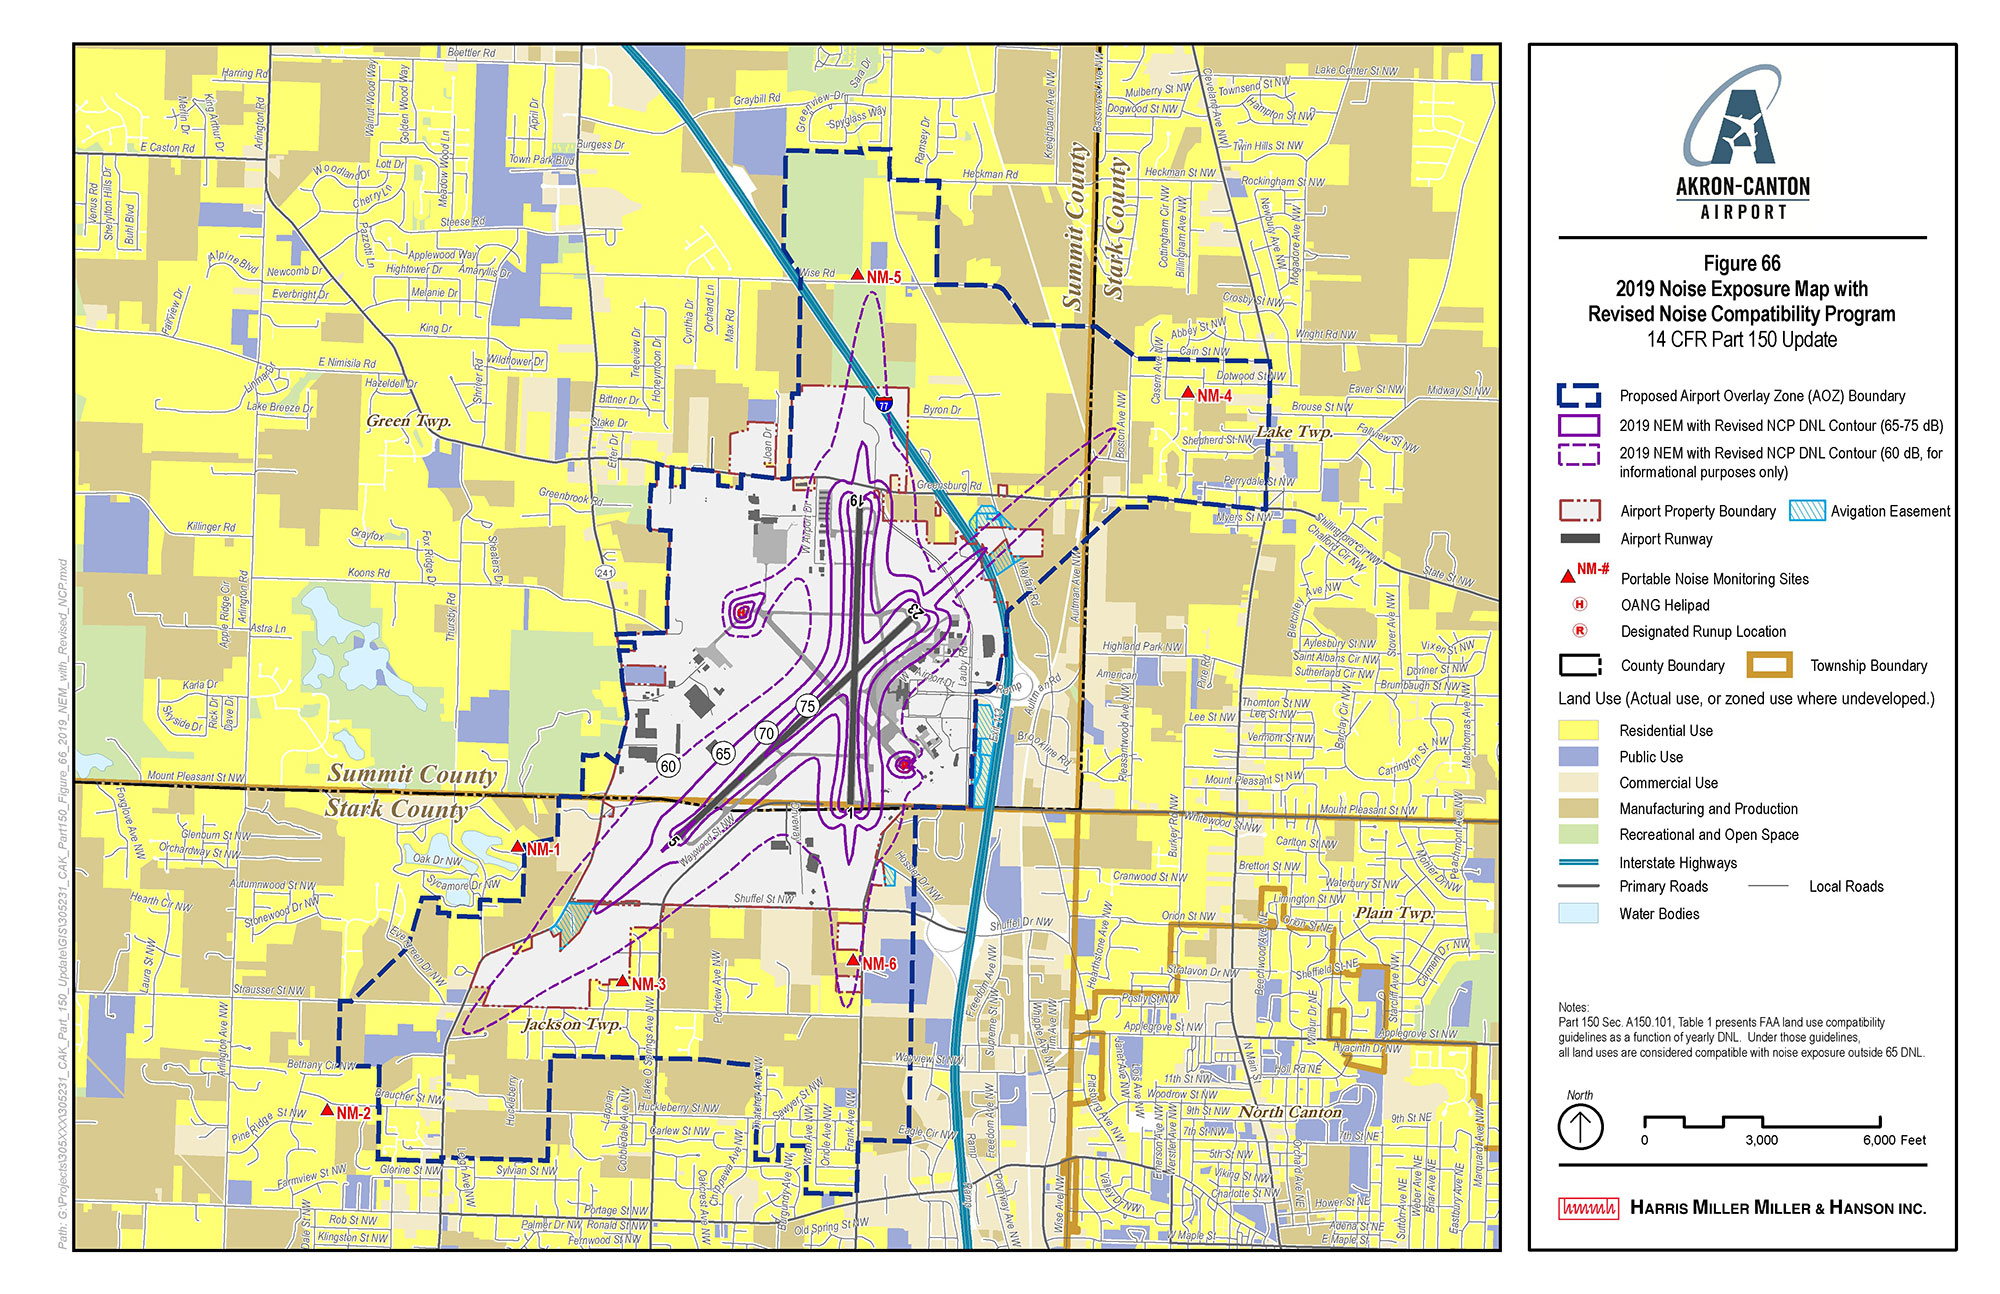 Master Plan and Noise Compatibility Planning (Part 150), Akron-Canton Airport